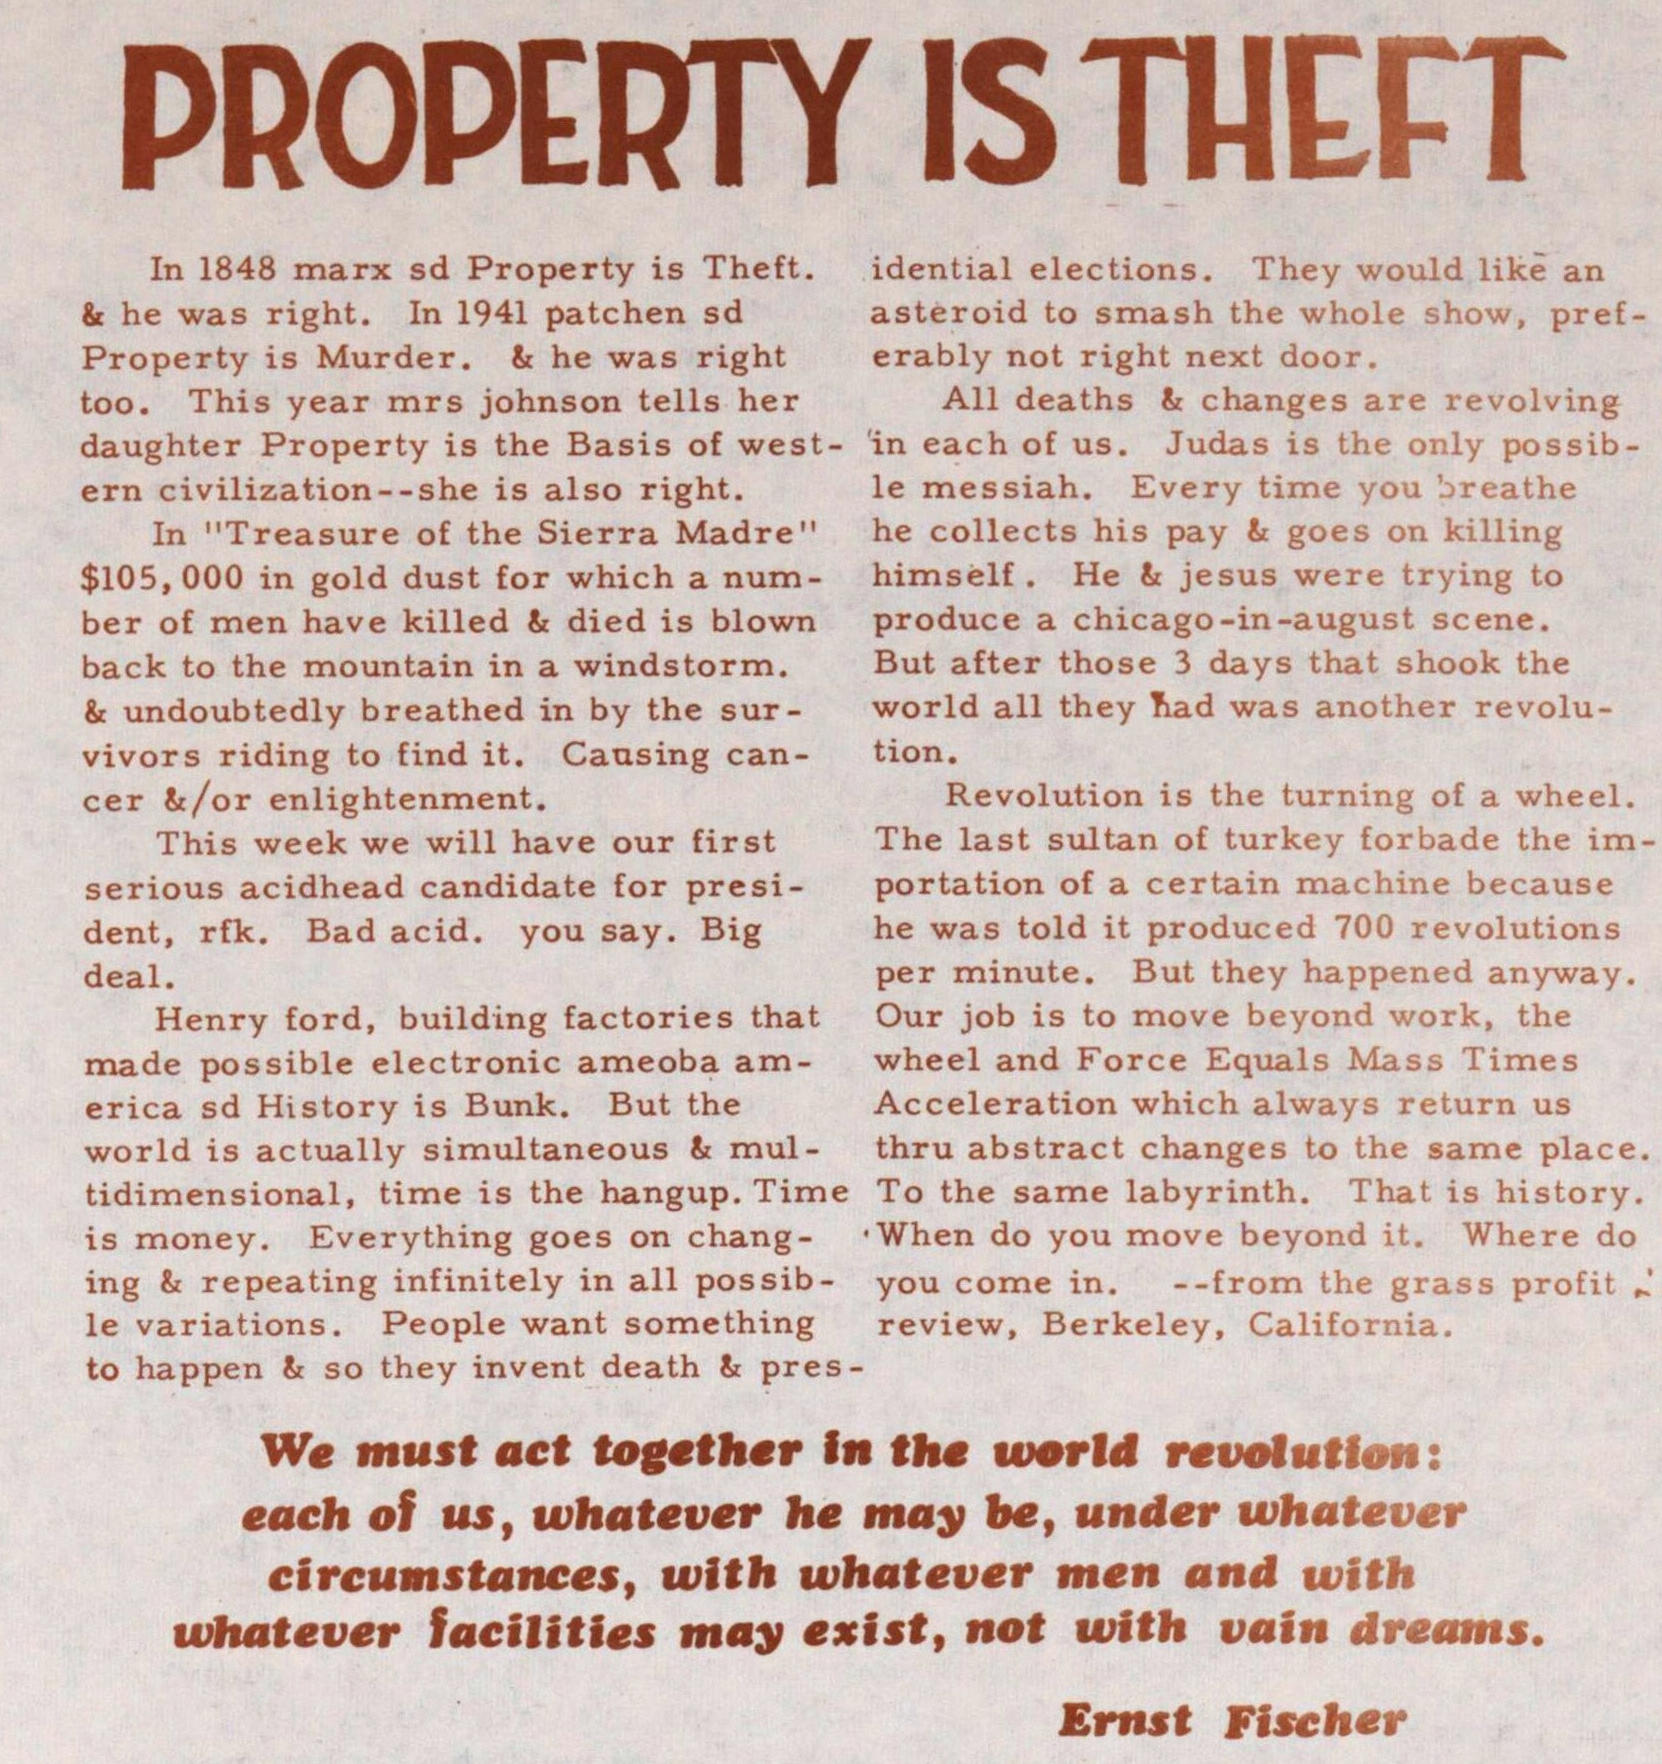 Property Is Theft image